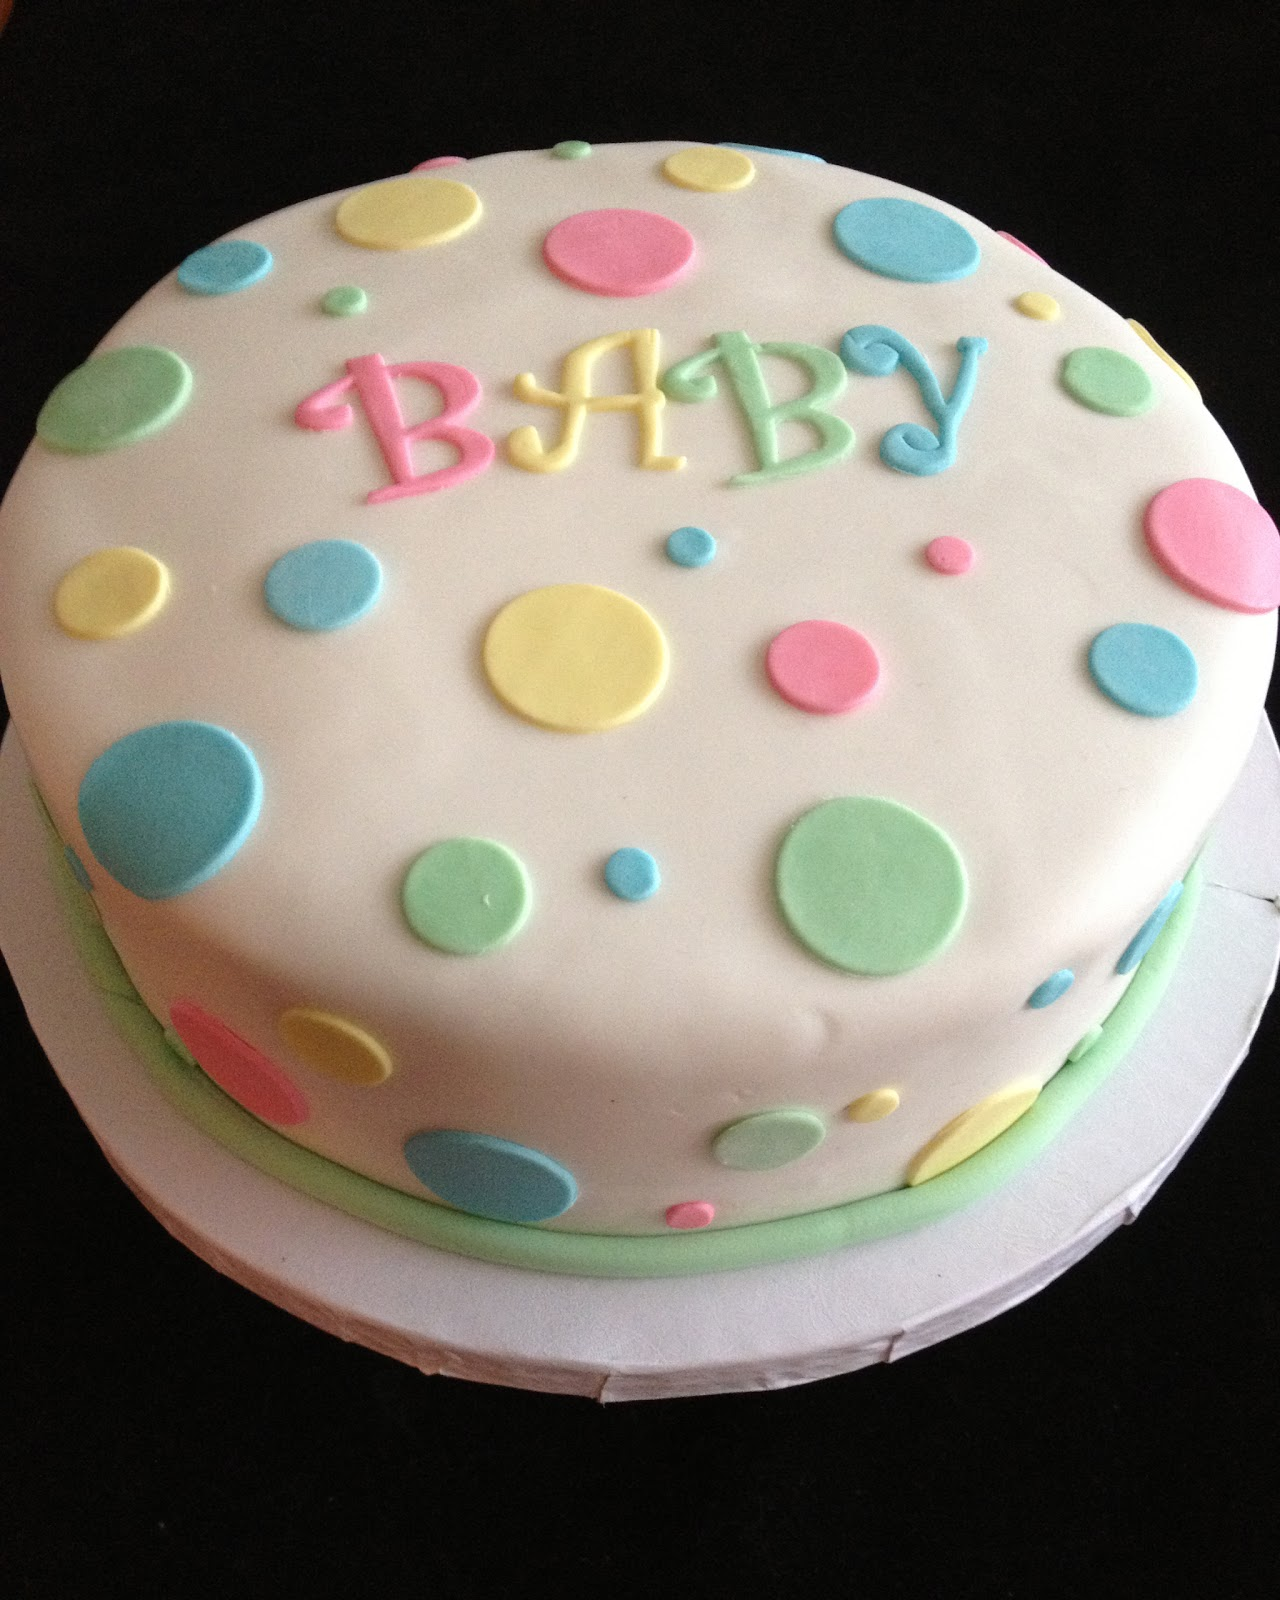 Cake Design Baby Shower : Baby Shower Cakes: Baby Shower Cake Ideas To Make At Home